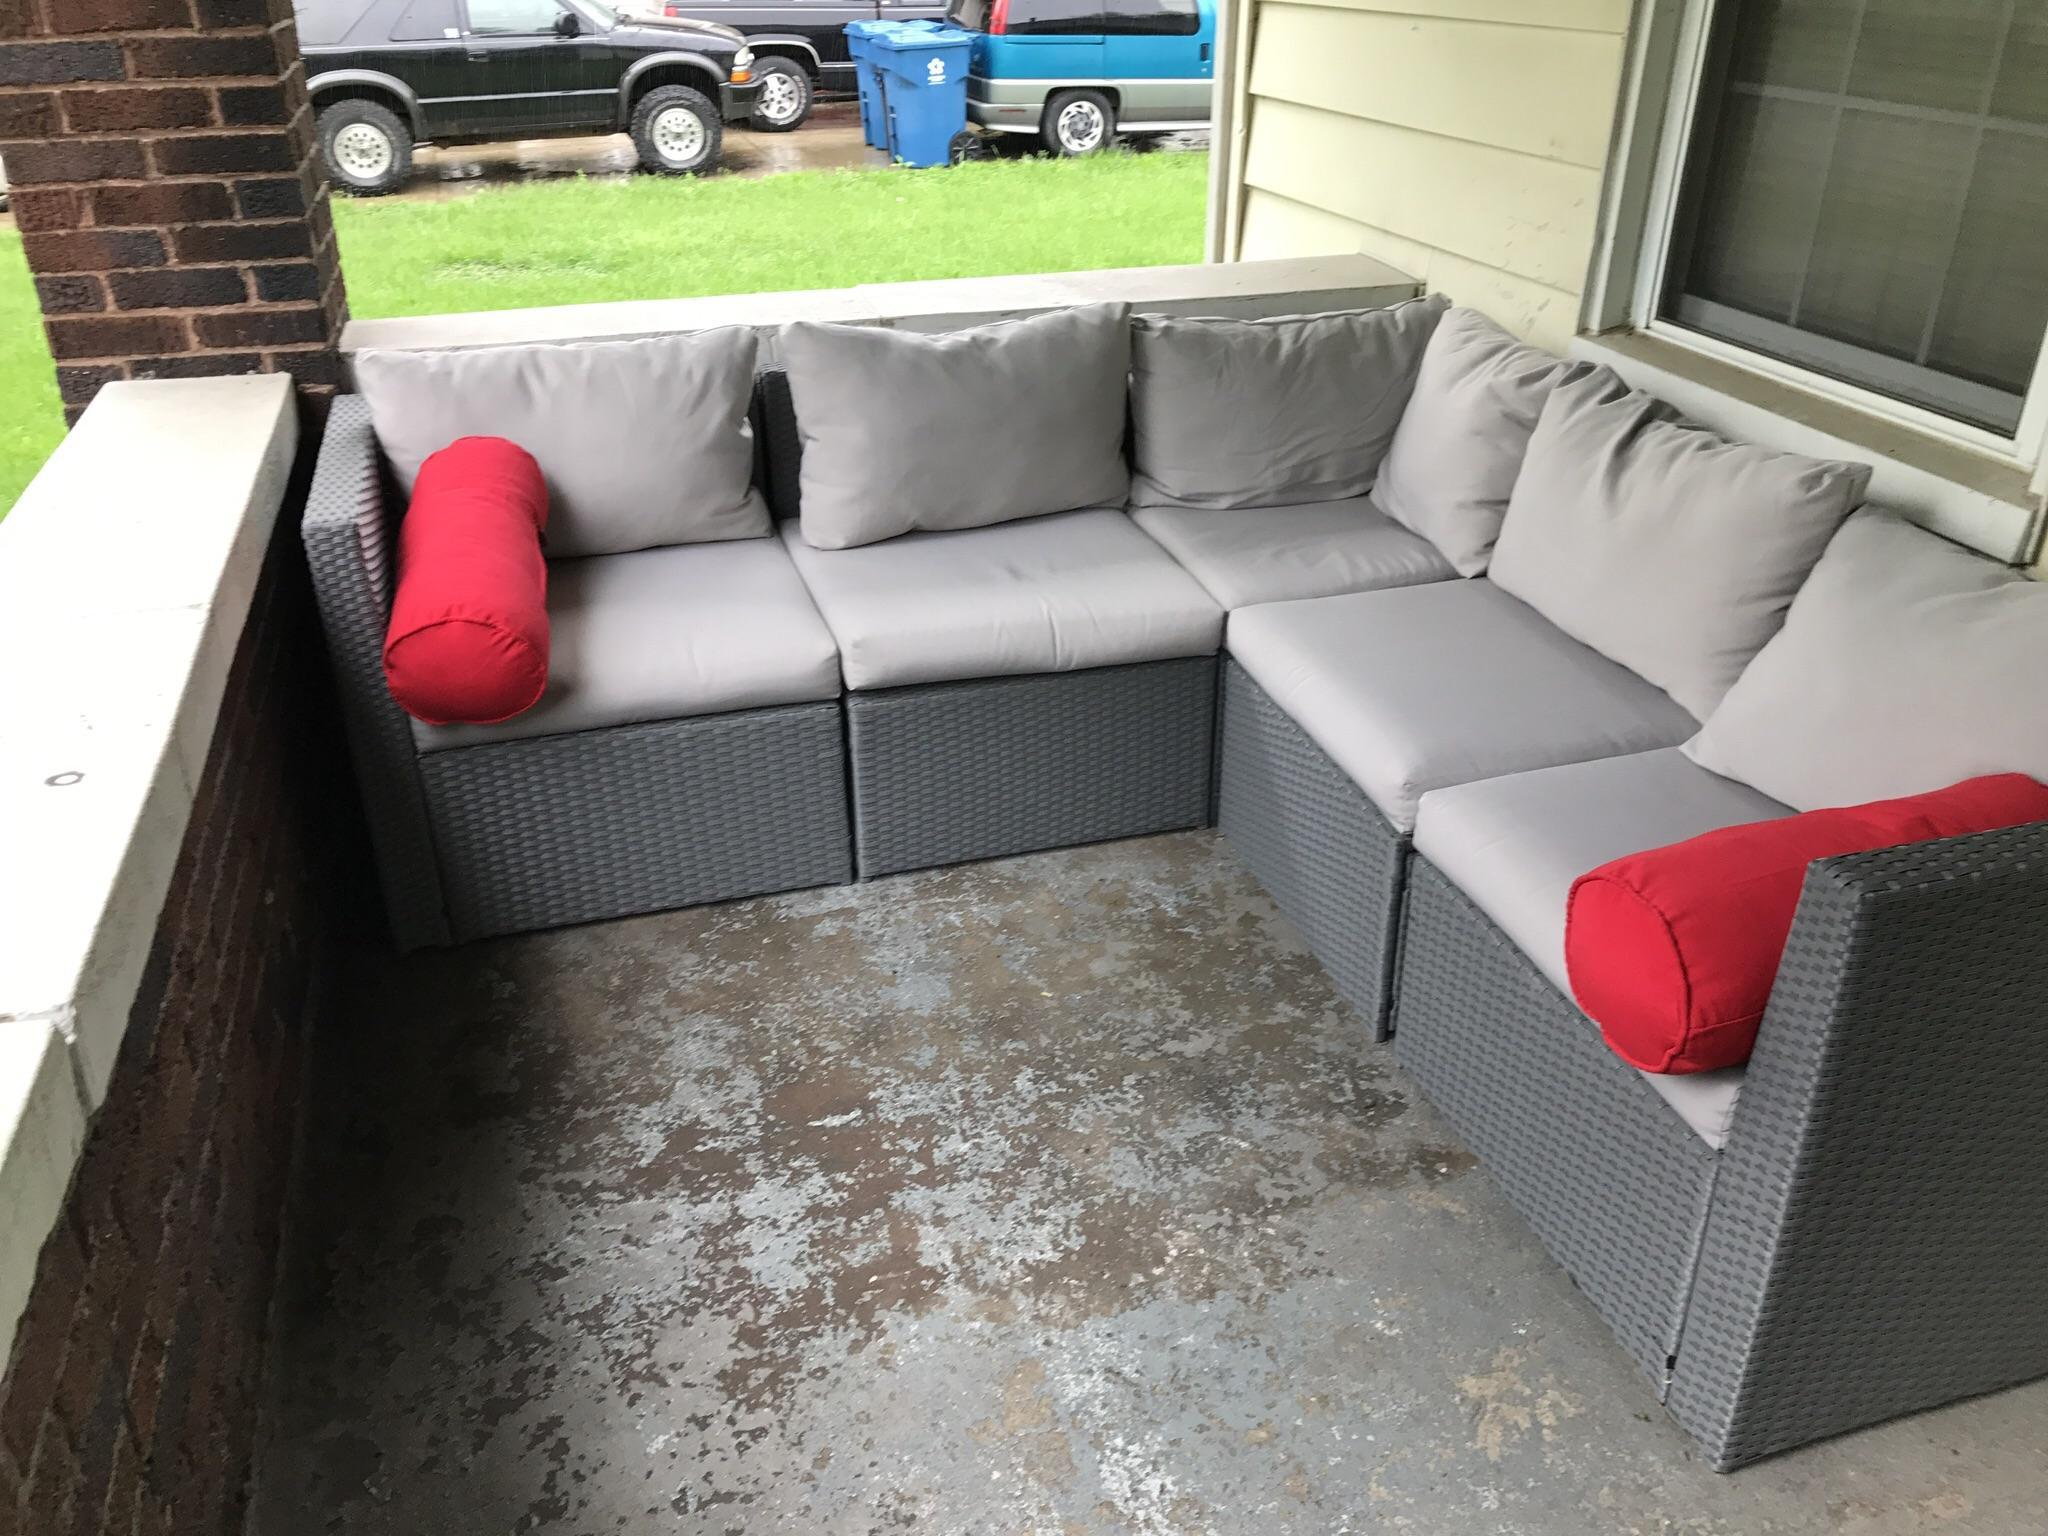 Sofa Couch Reddit The Way My Sofa Fits On My Porch Oddlysatisfying